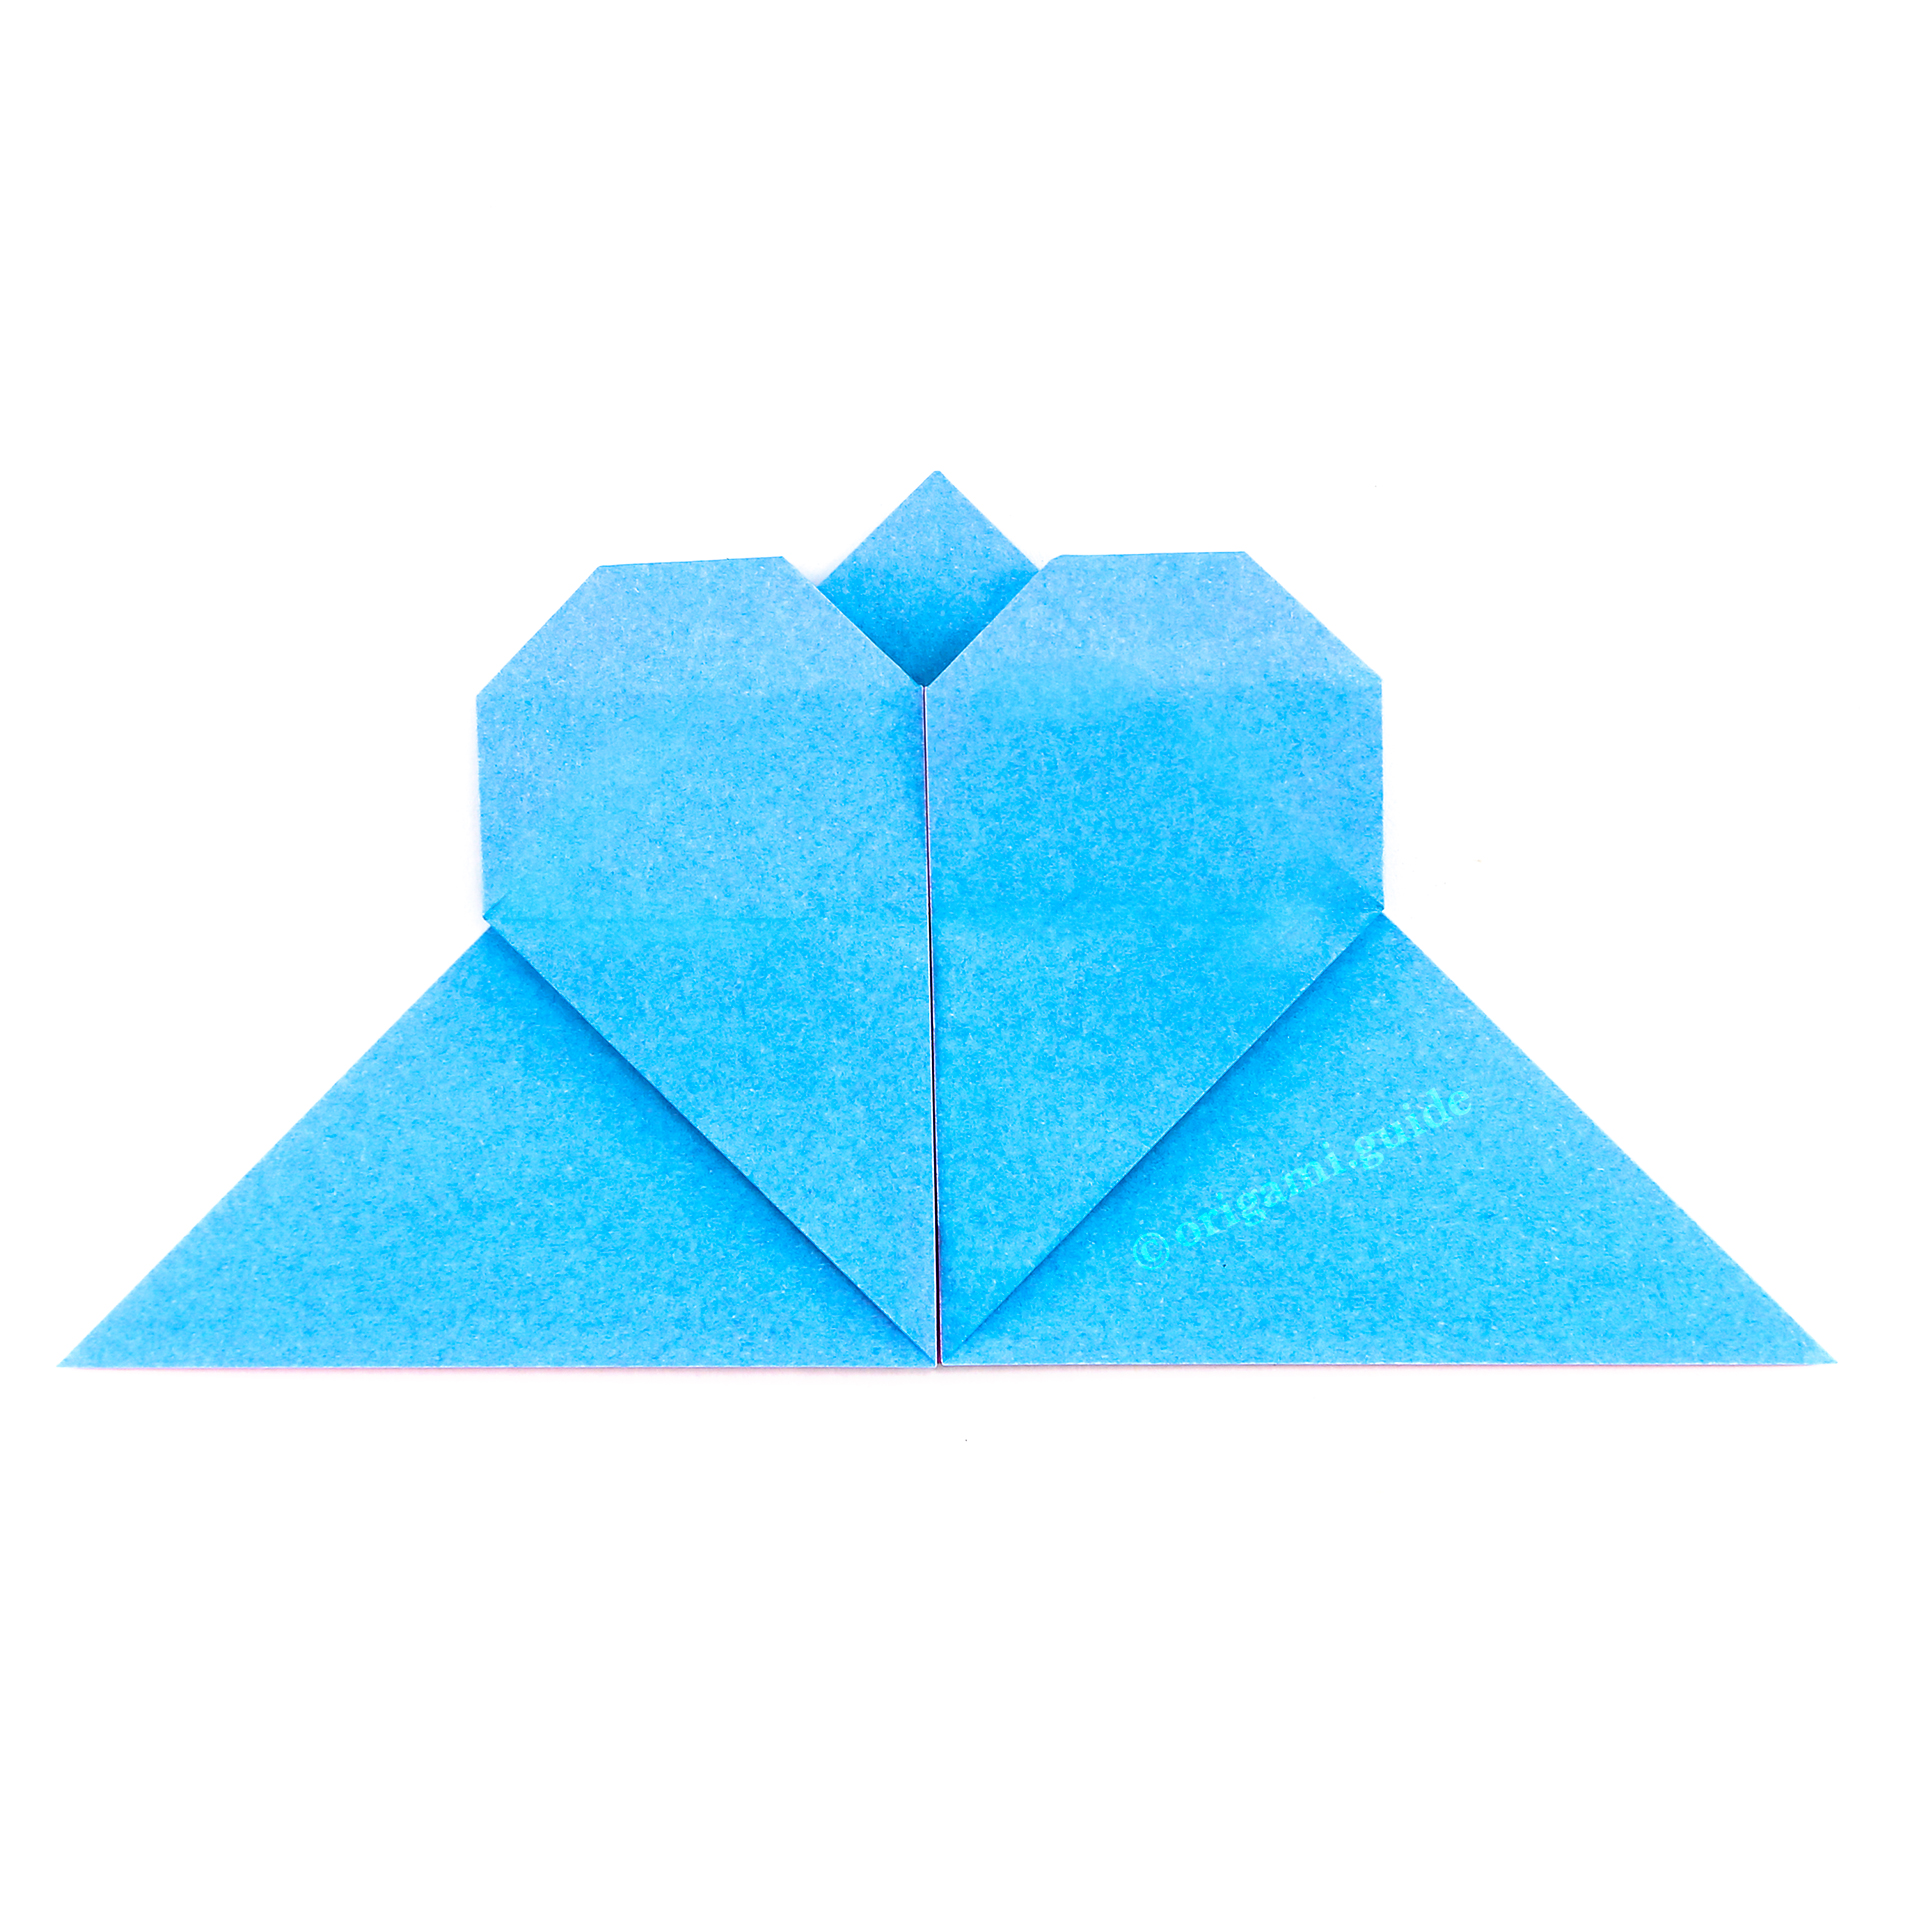 Origami heart bookmark | Easy origami heart, Origami easy, Origami ... | 1920x1920